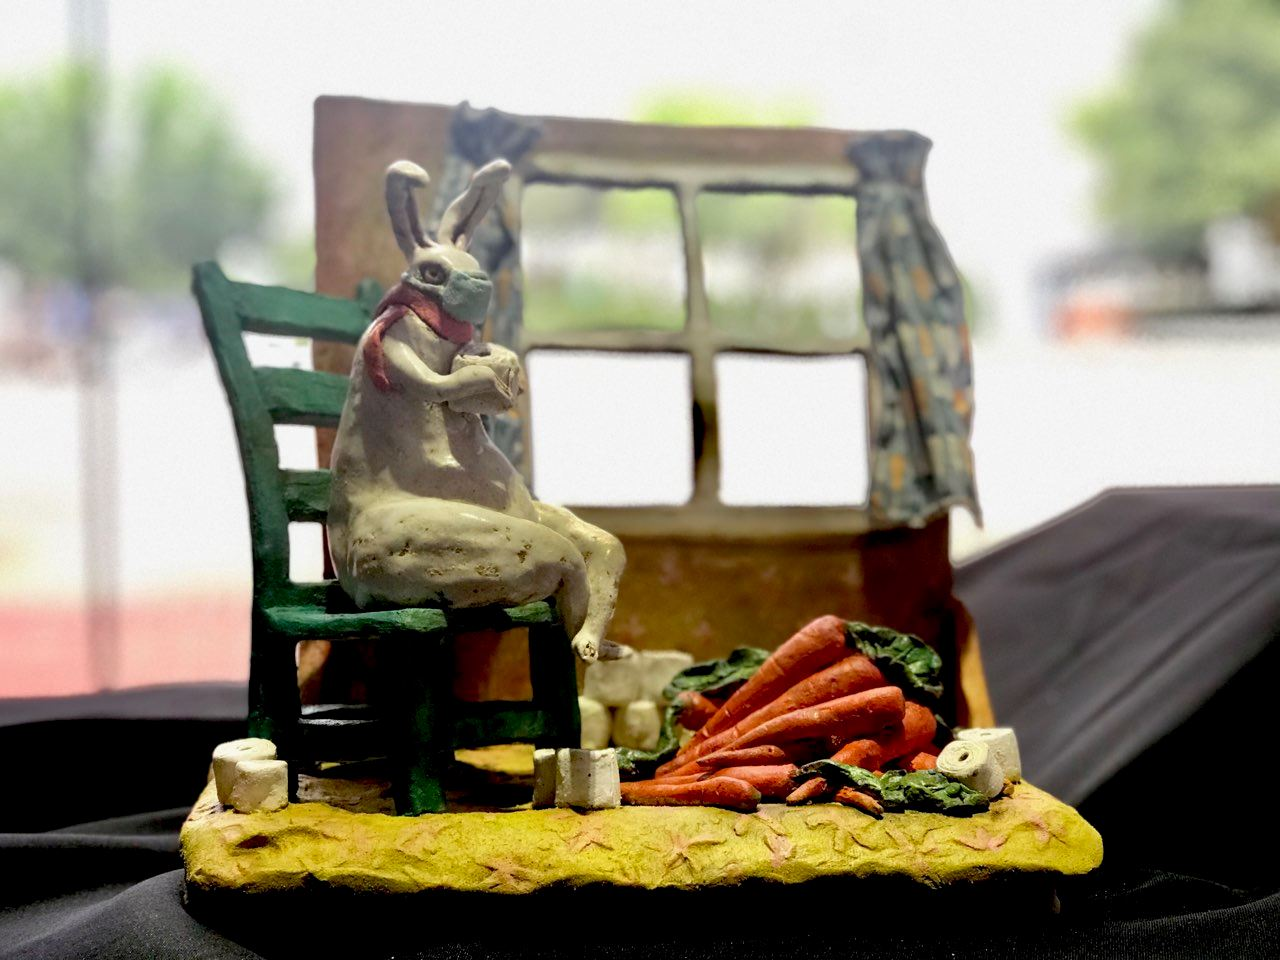 Sculpture of bunny in room with carrots and toilet paper